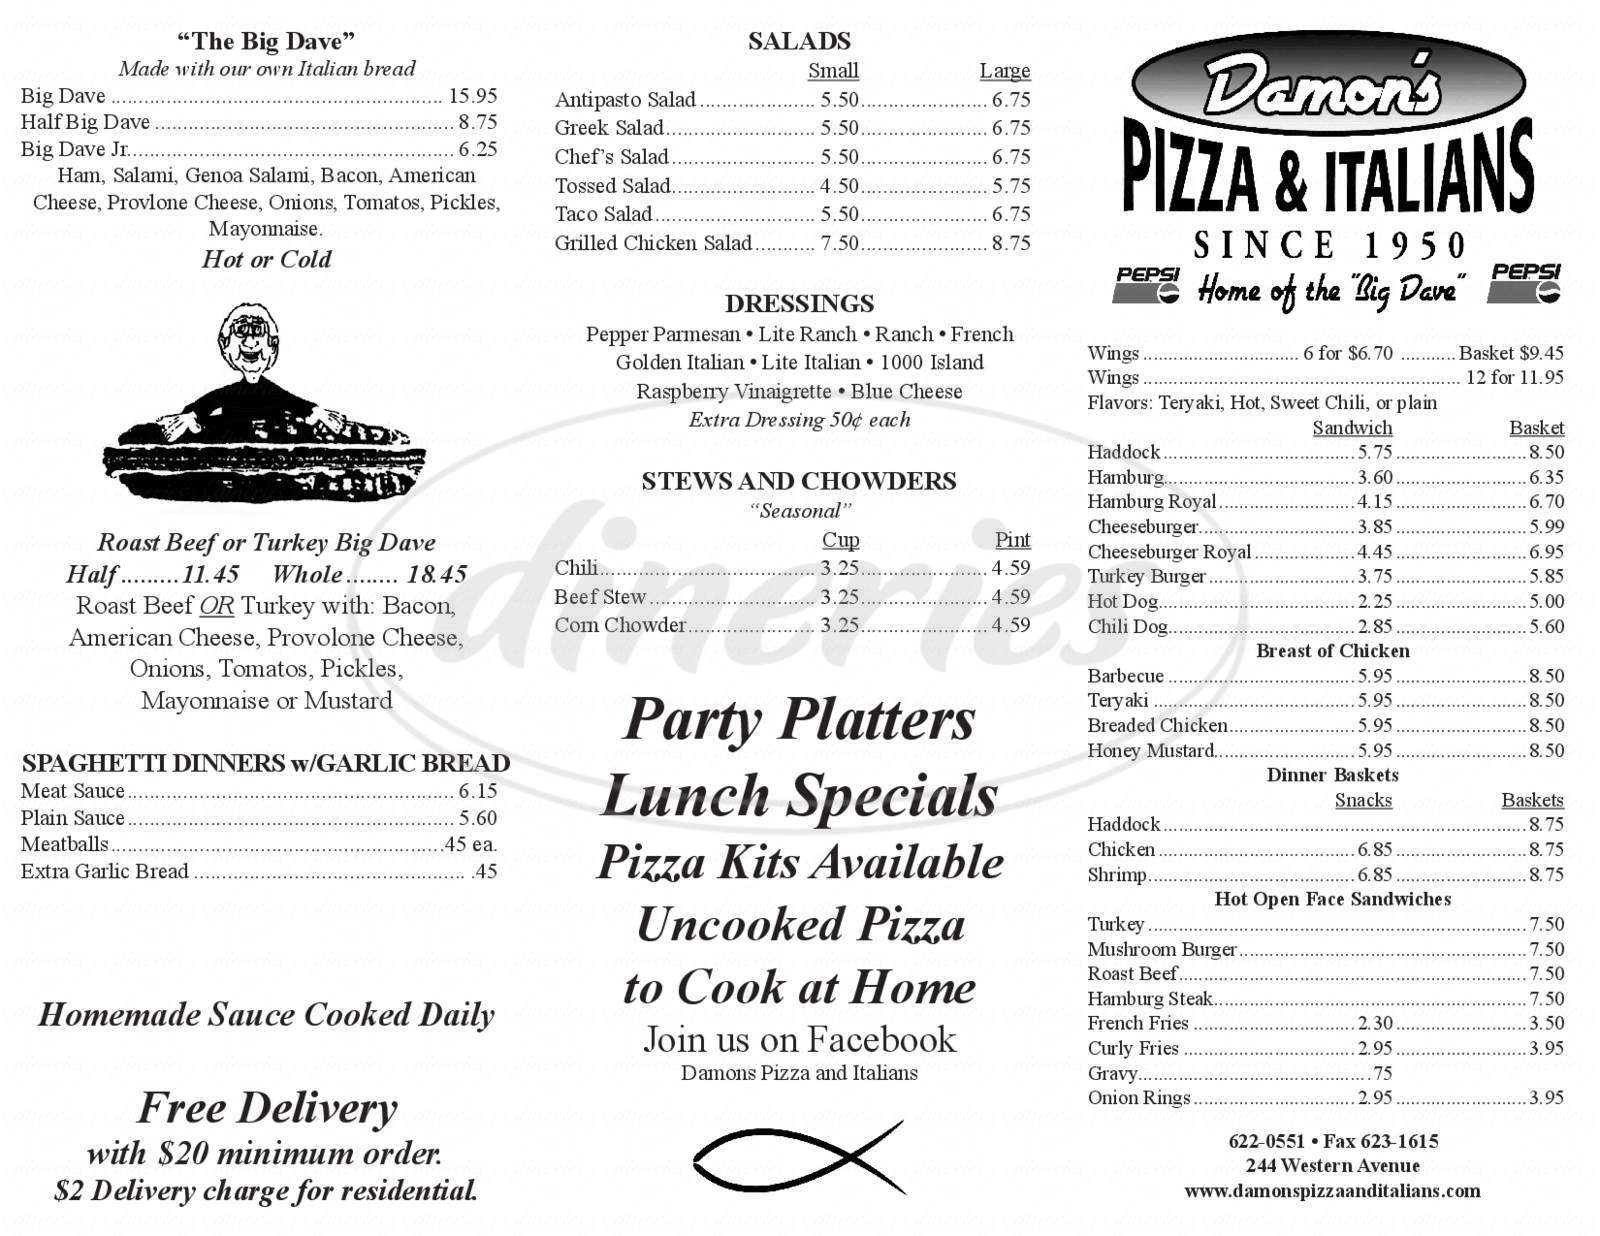 menu for Damon's Pizza & Italians